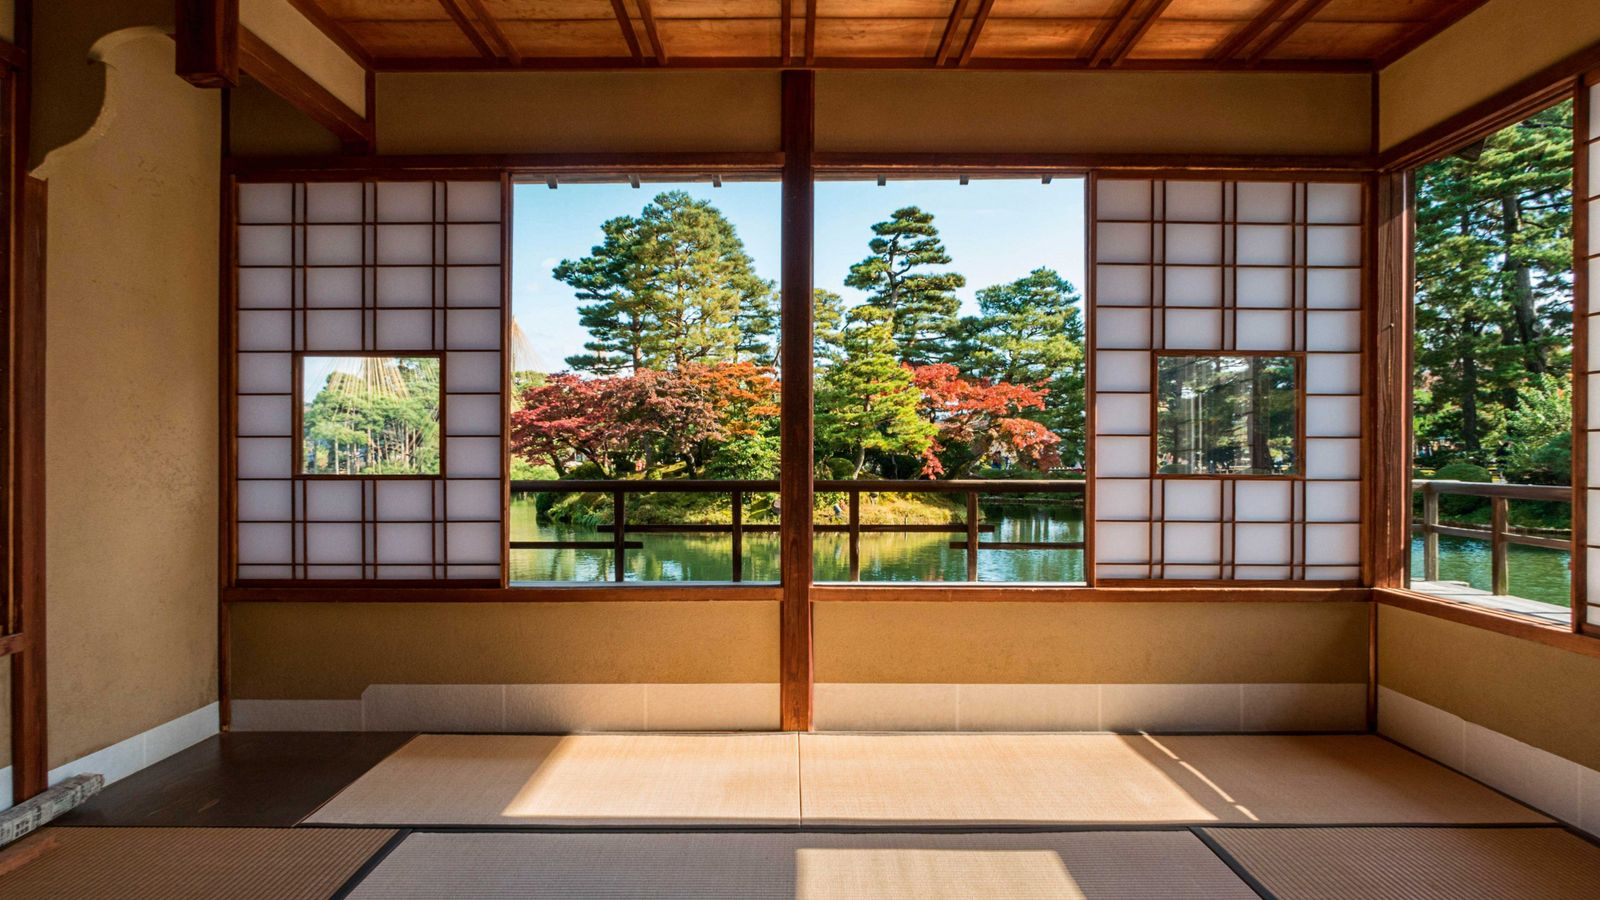 Tea house interior at Kenrokuen Gardens in Kanazawa,  a city backed by mountains and fronted ...